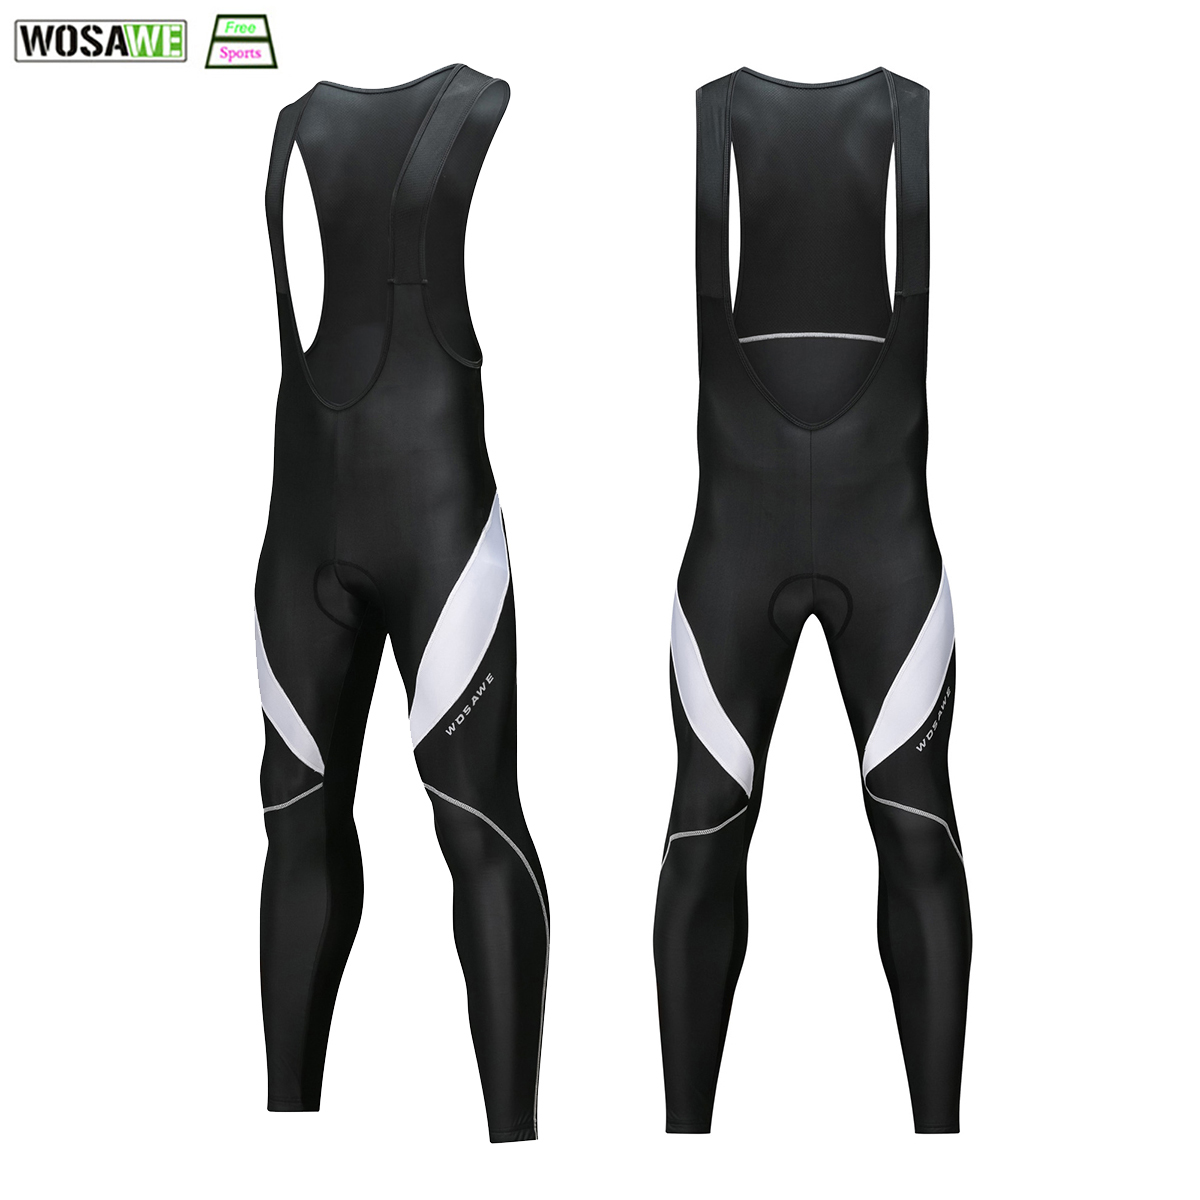 цена на WOSAWE Warm Up Cycling Bib Trousers 3D Gel Padded Cycling Long Leggings Bicycle Bib Tights Winter Thermal Pro Cycling Pants